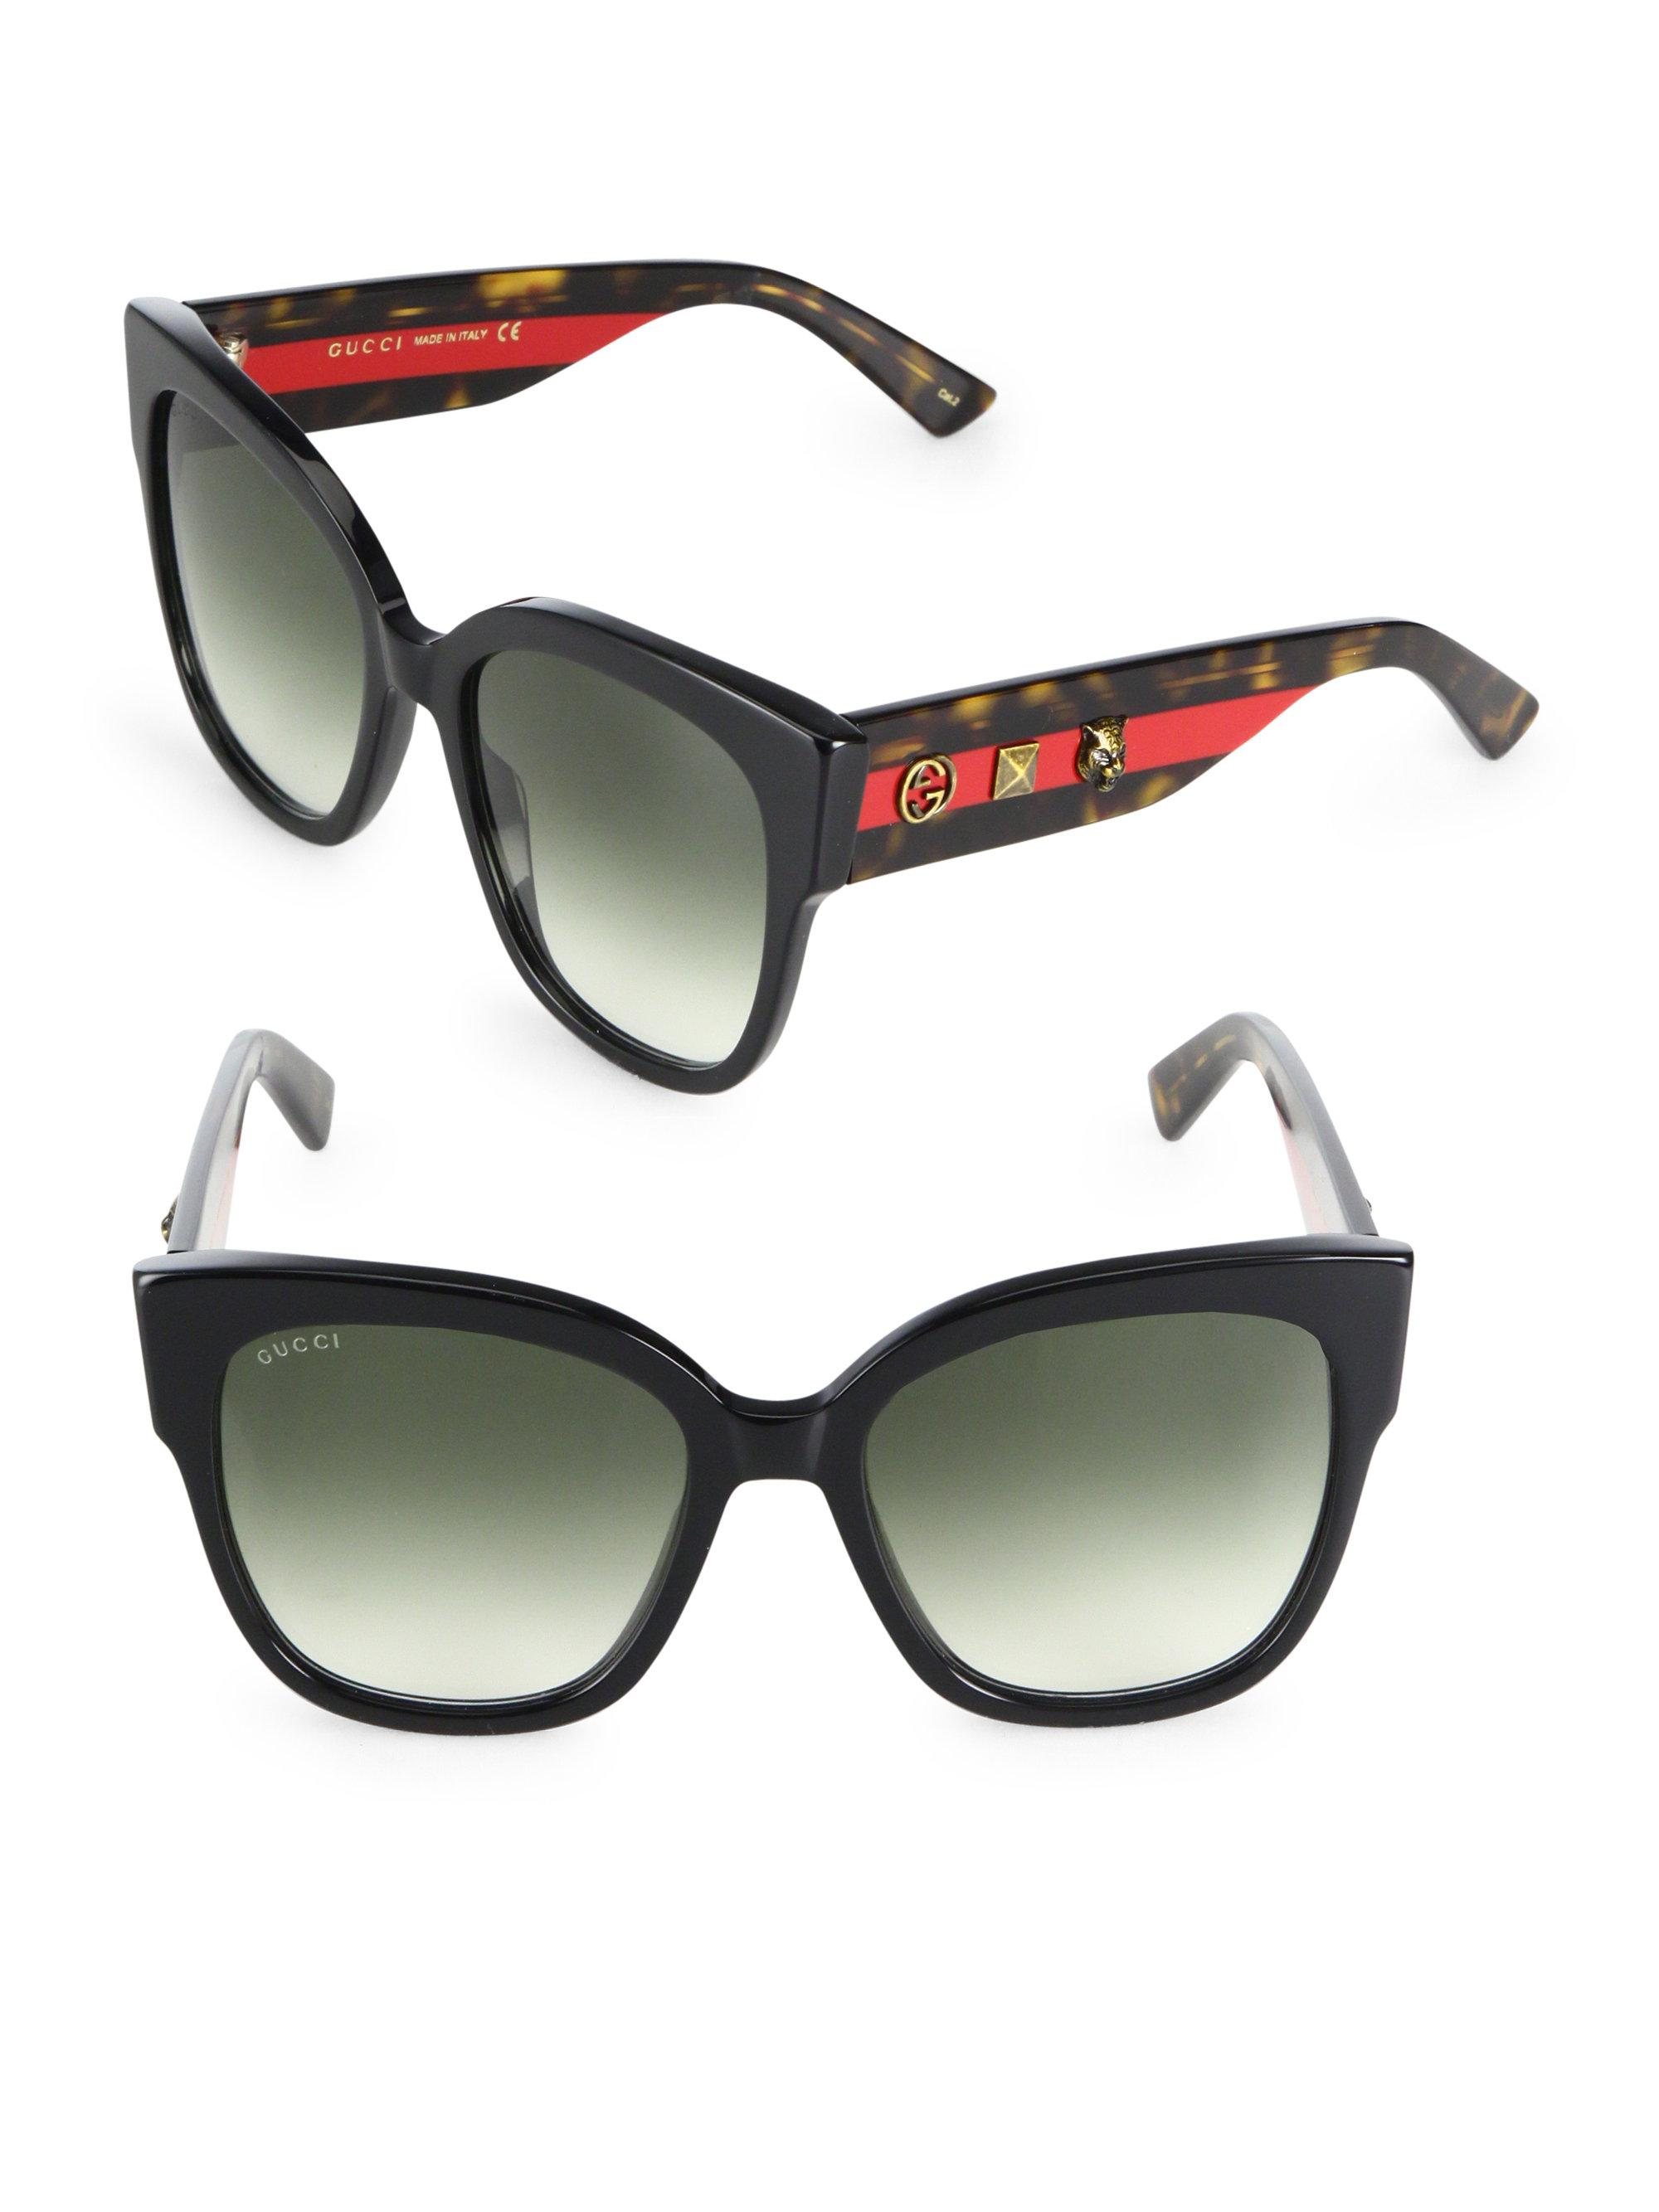 5c976f8ee04 Lyst - Gucci 55mm Oversized Studded Square Cat Eye Sunglasses in Black